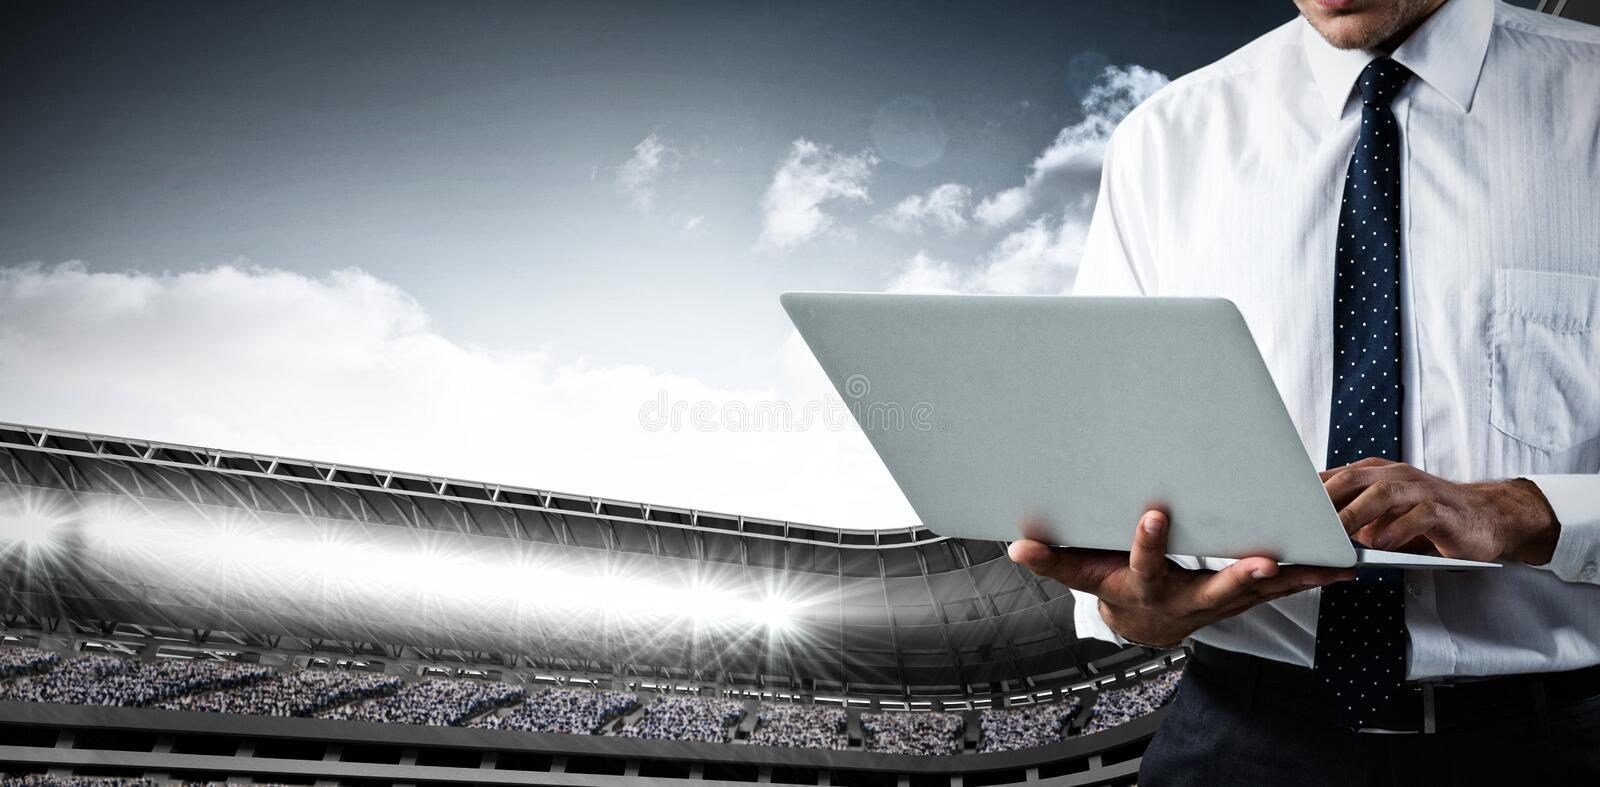 Composite image of mid-section of business man using a laptop stock photos